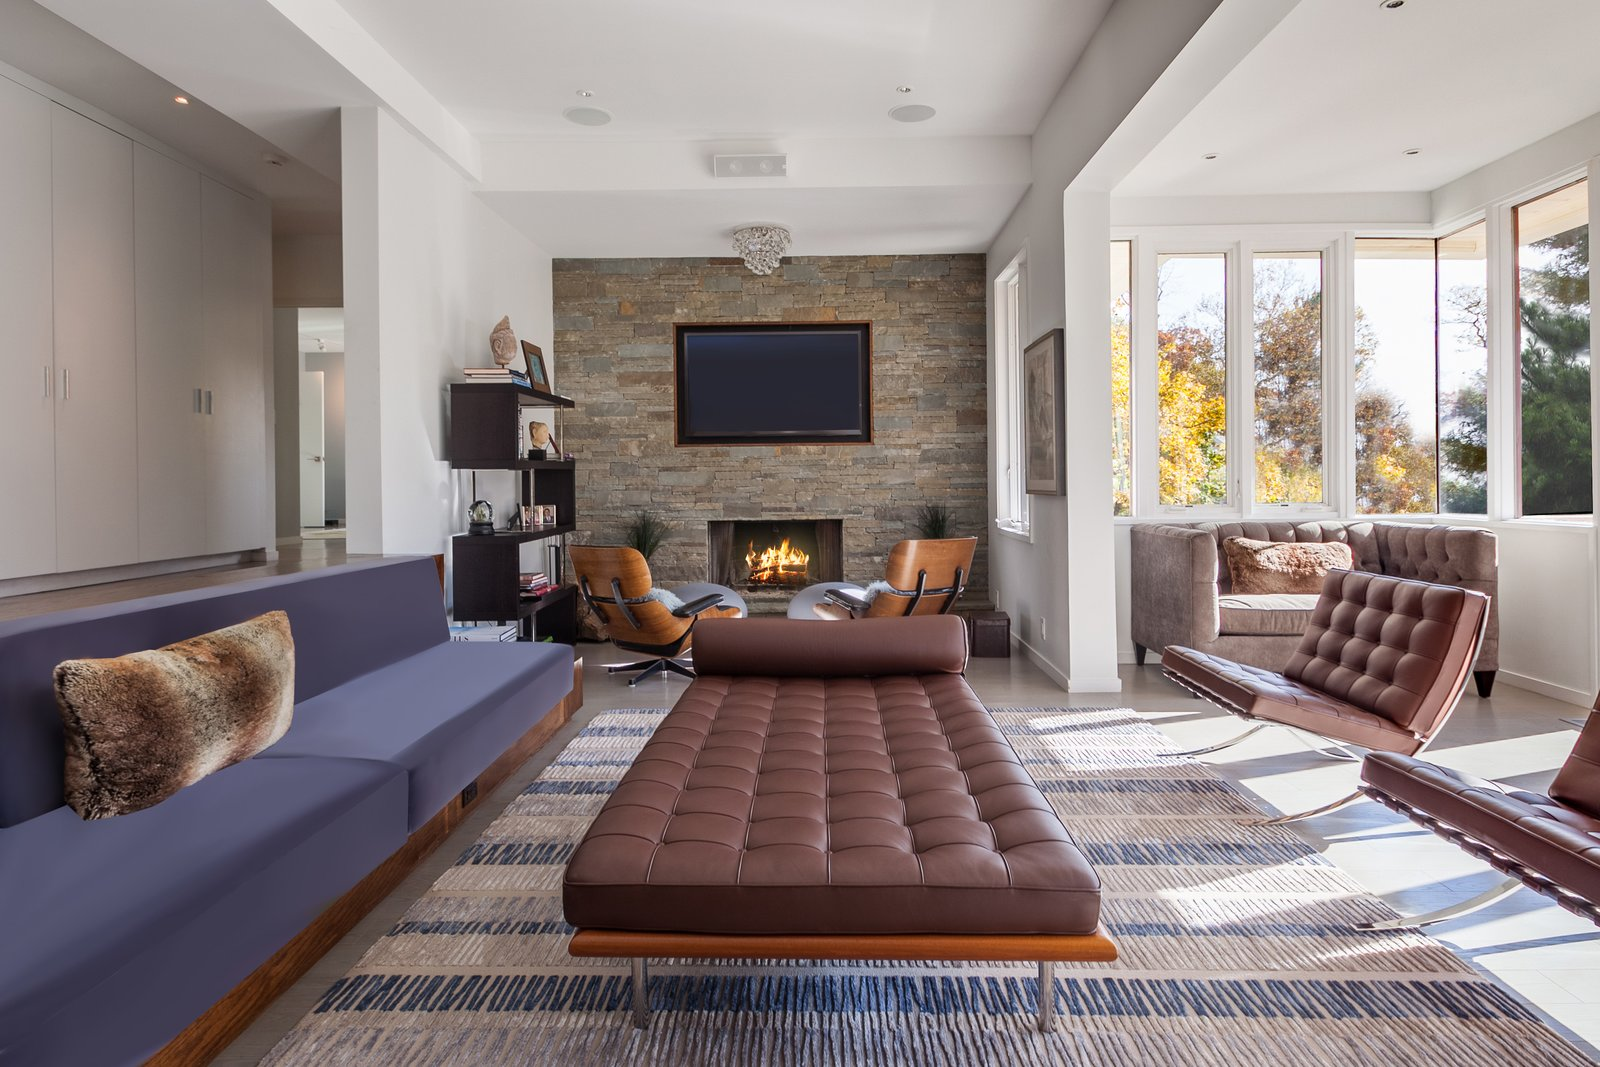 Eames Lounge Chair Living Room photo 1 of 188 in eames lounge chair and ottoman from an